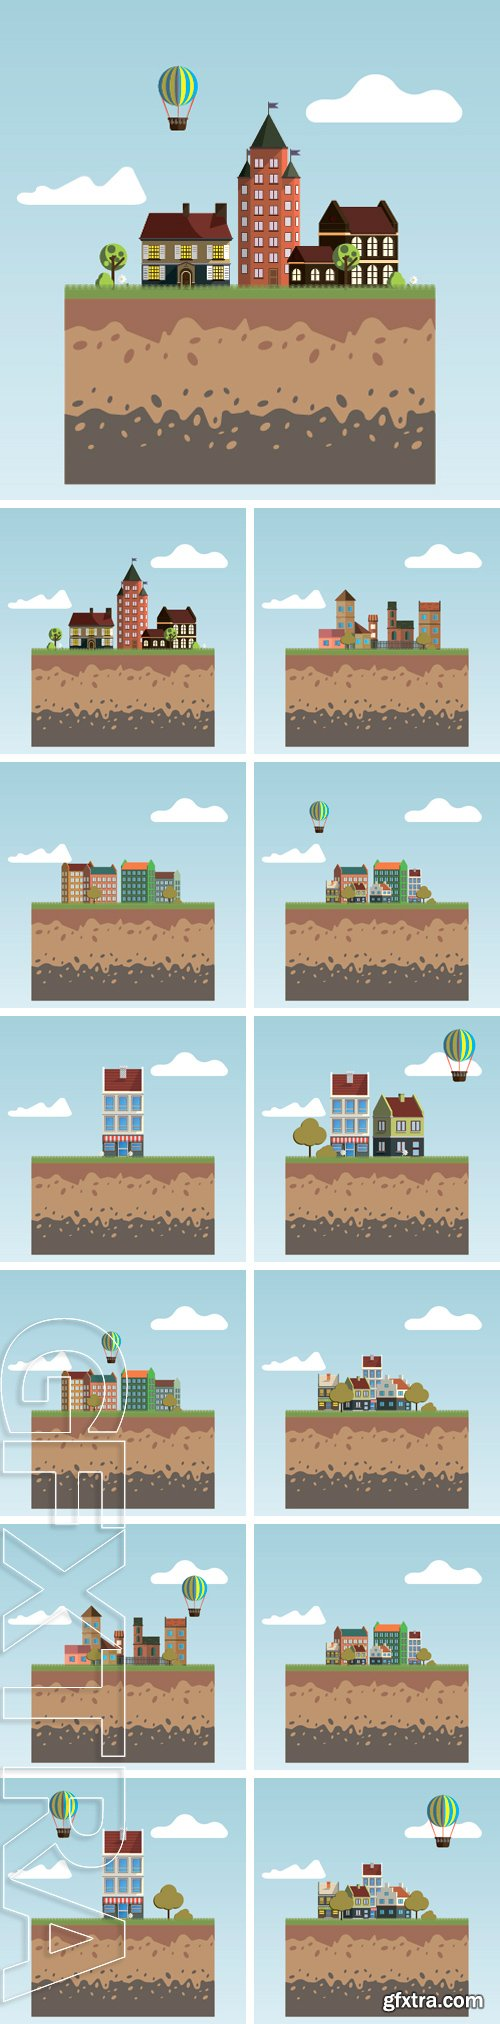 Stock Vectors - Flat design modern illustration icon of urban landscape and city life. Building icon